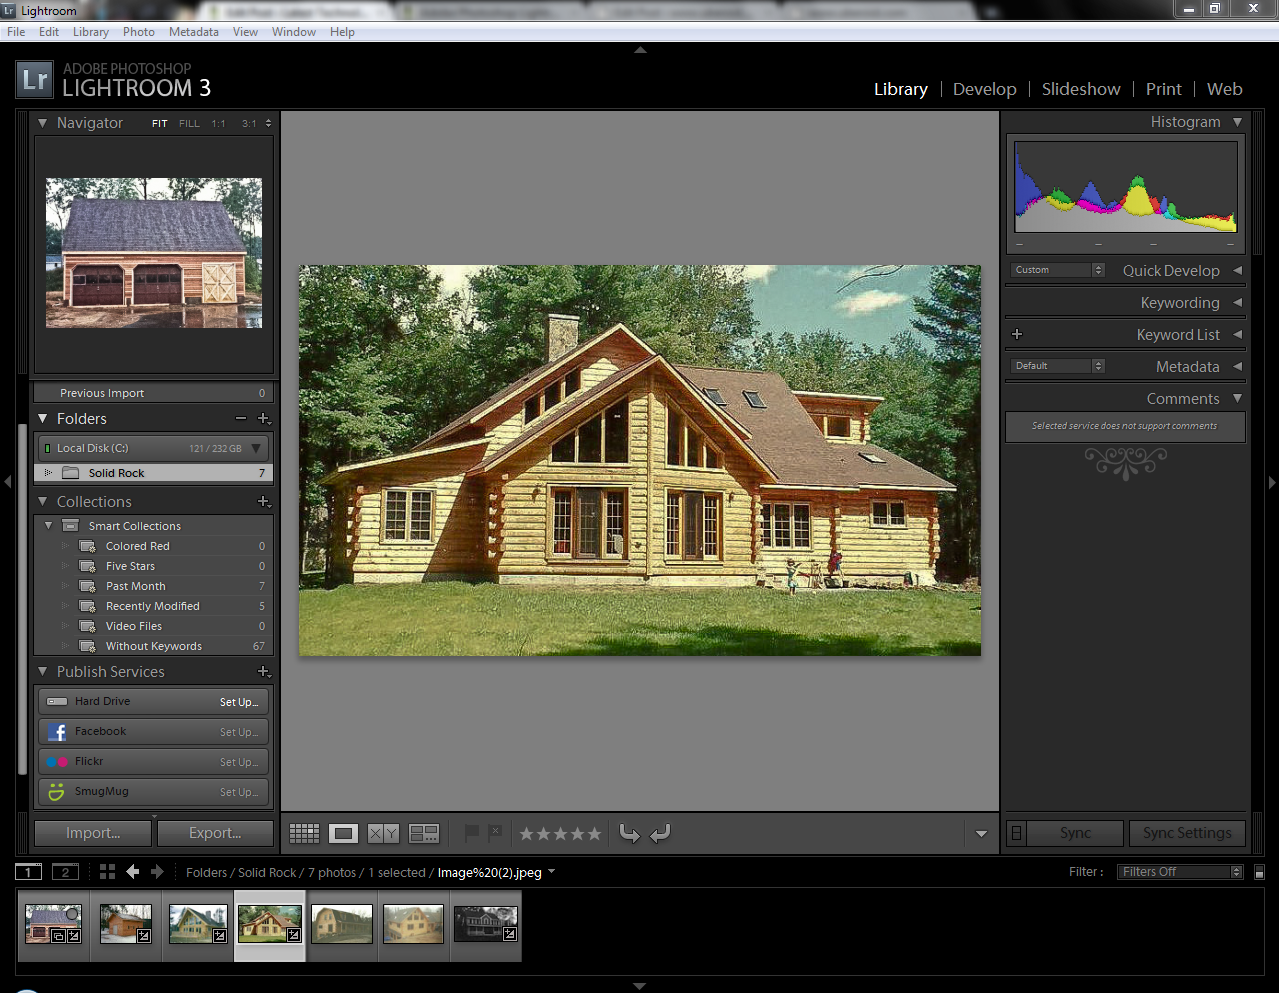 Adobe Photoshop Lightroom 3 Library